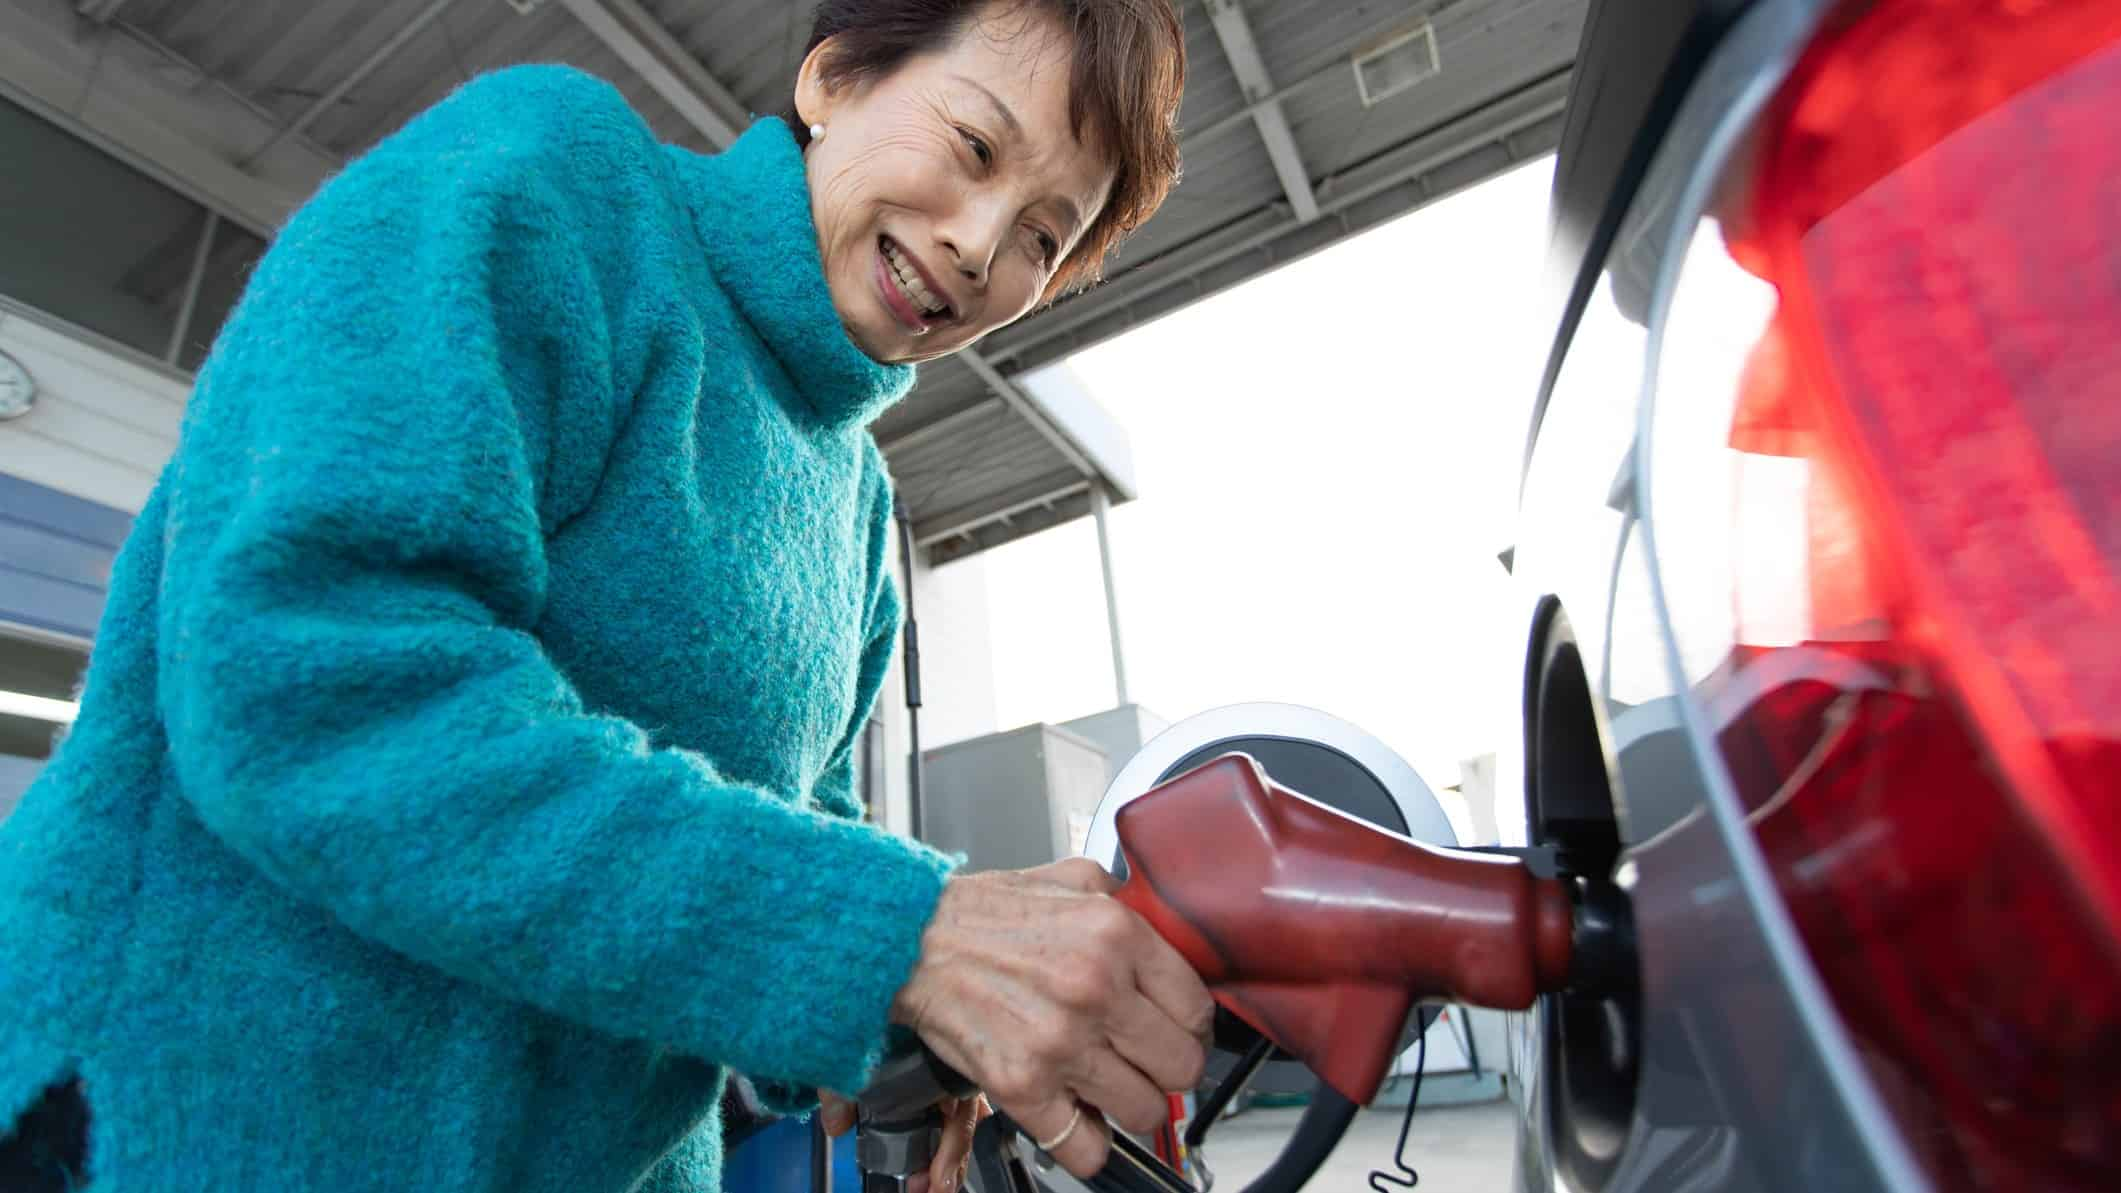 An older Asian woman fills up her car with petrol at the service station.